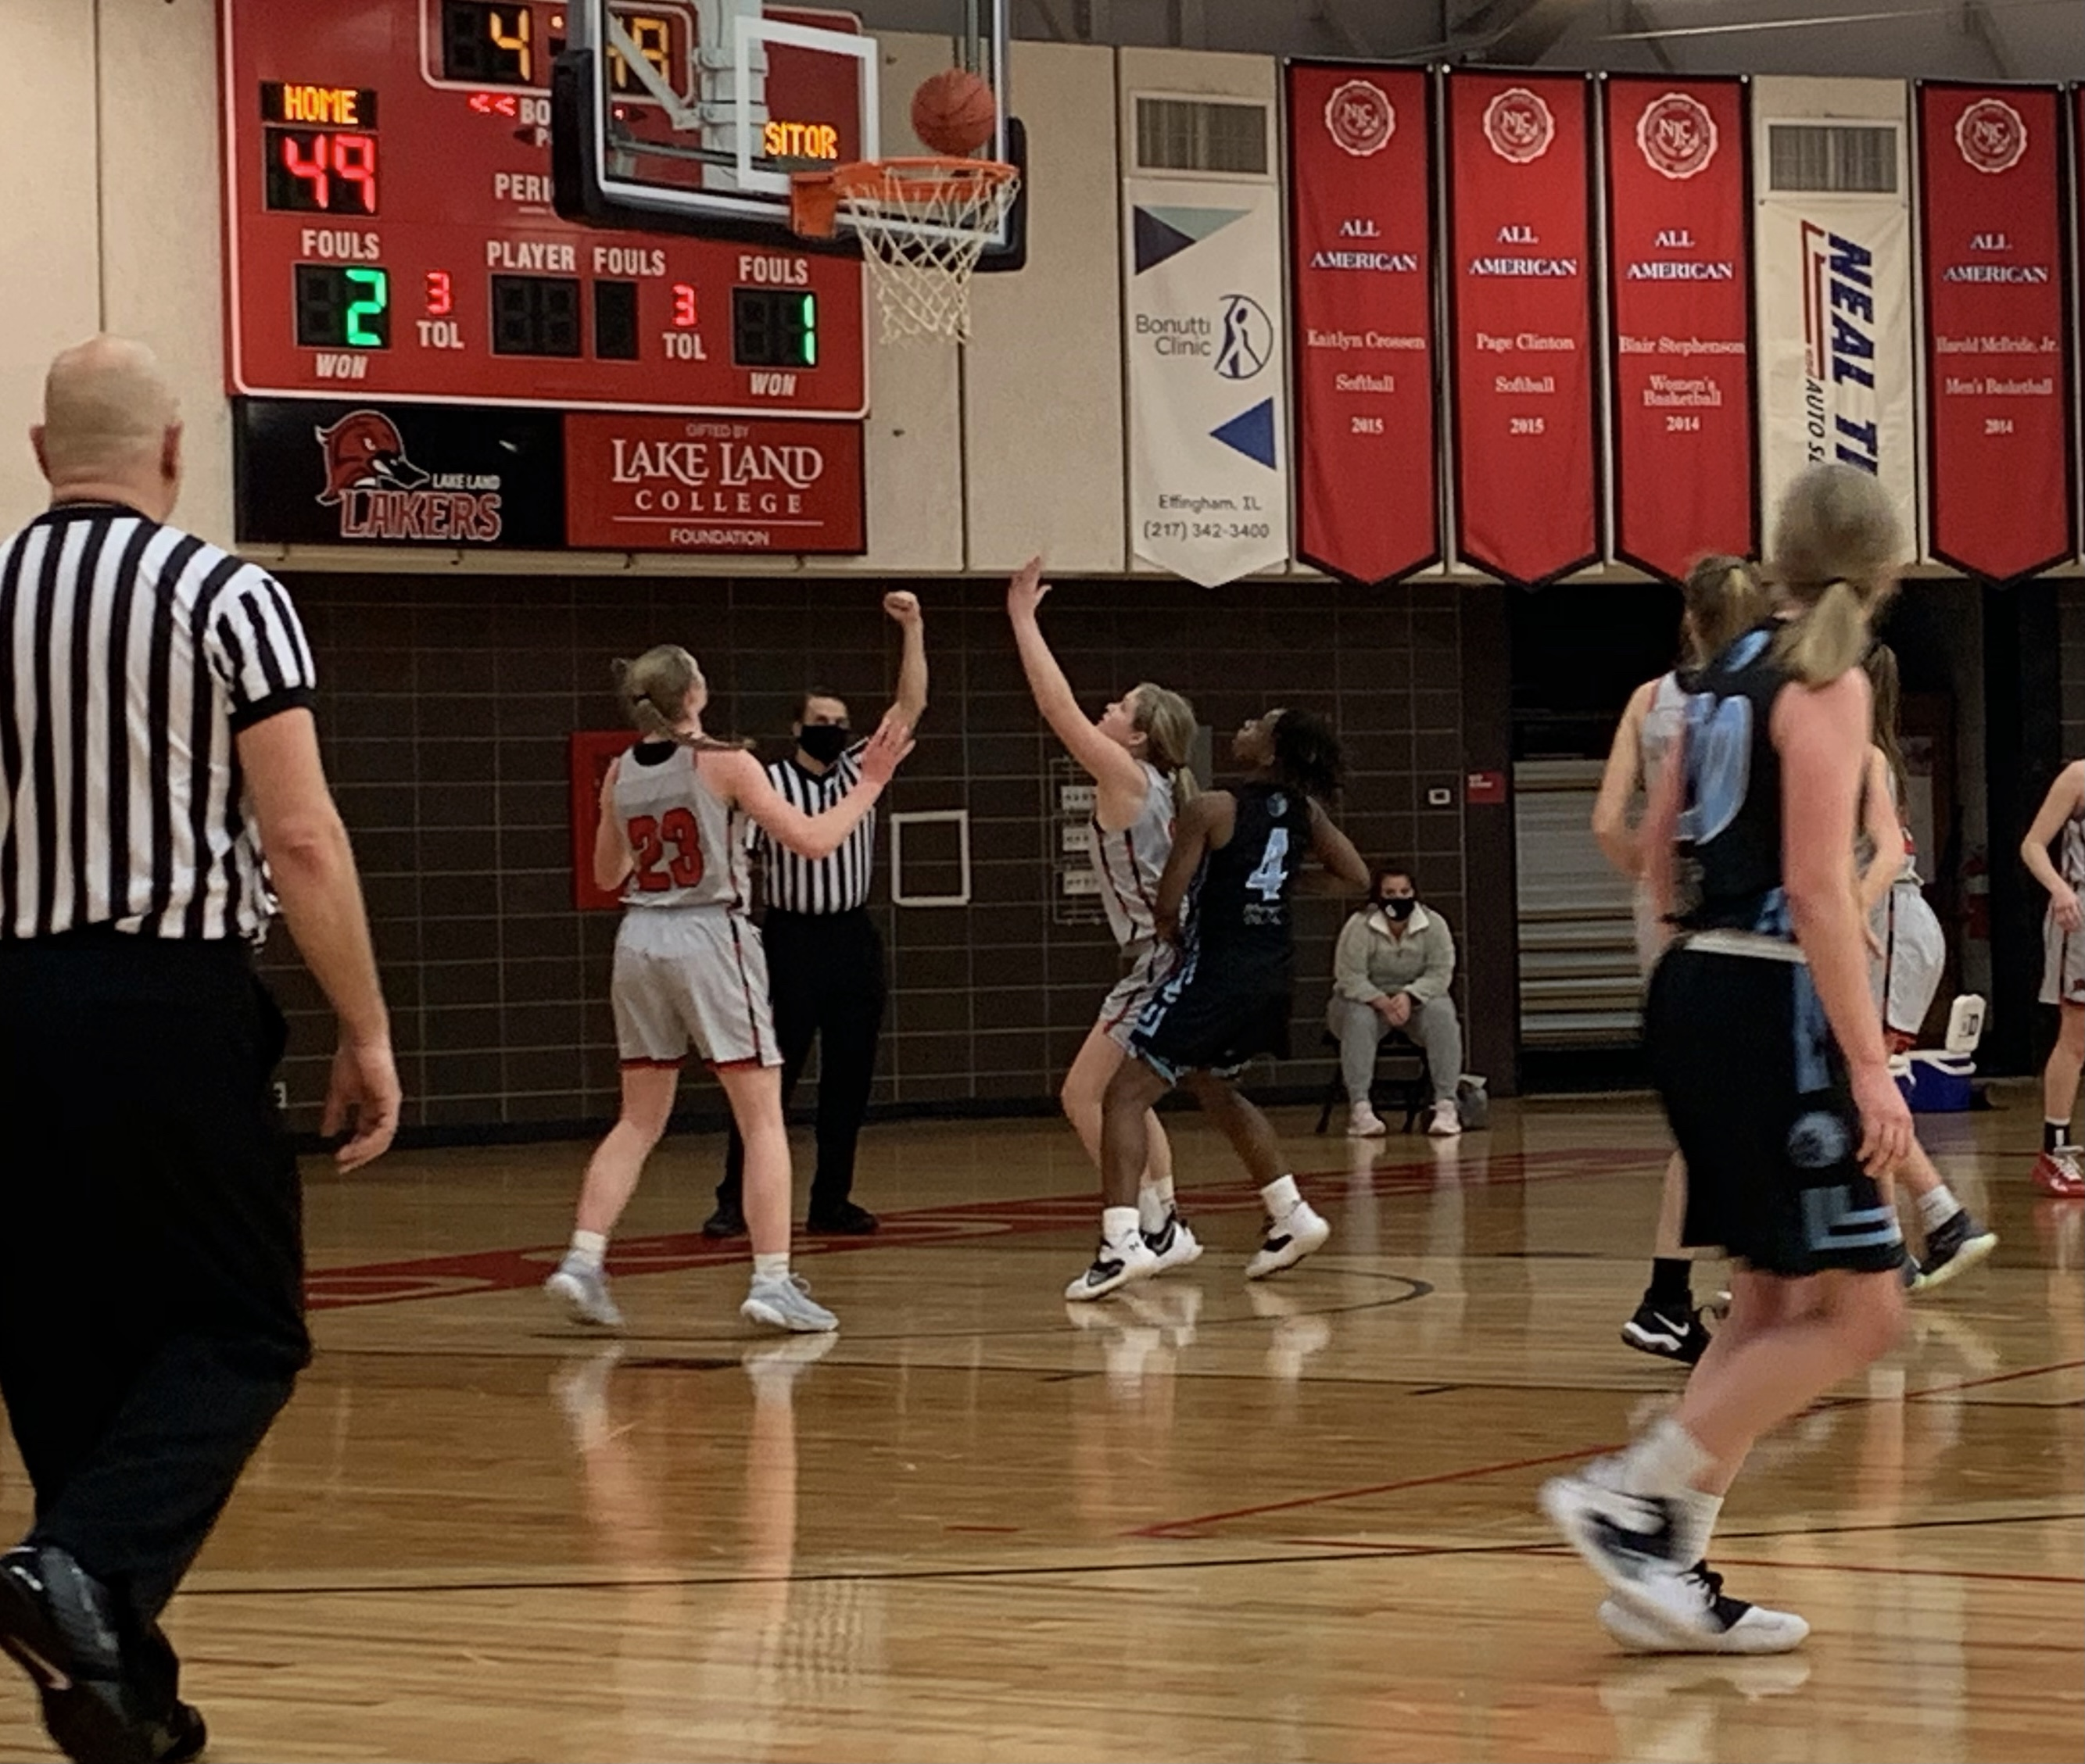 Weis, Gant pace No. 10 Lakers women past Olney Central, 75-58